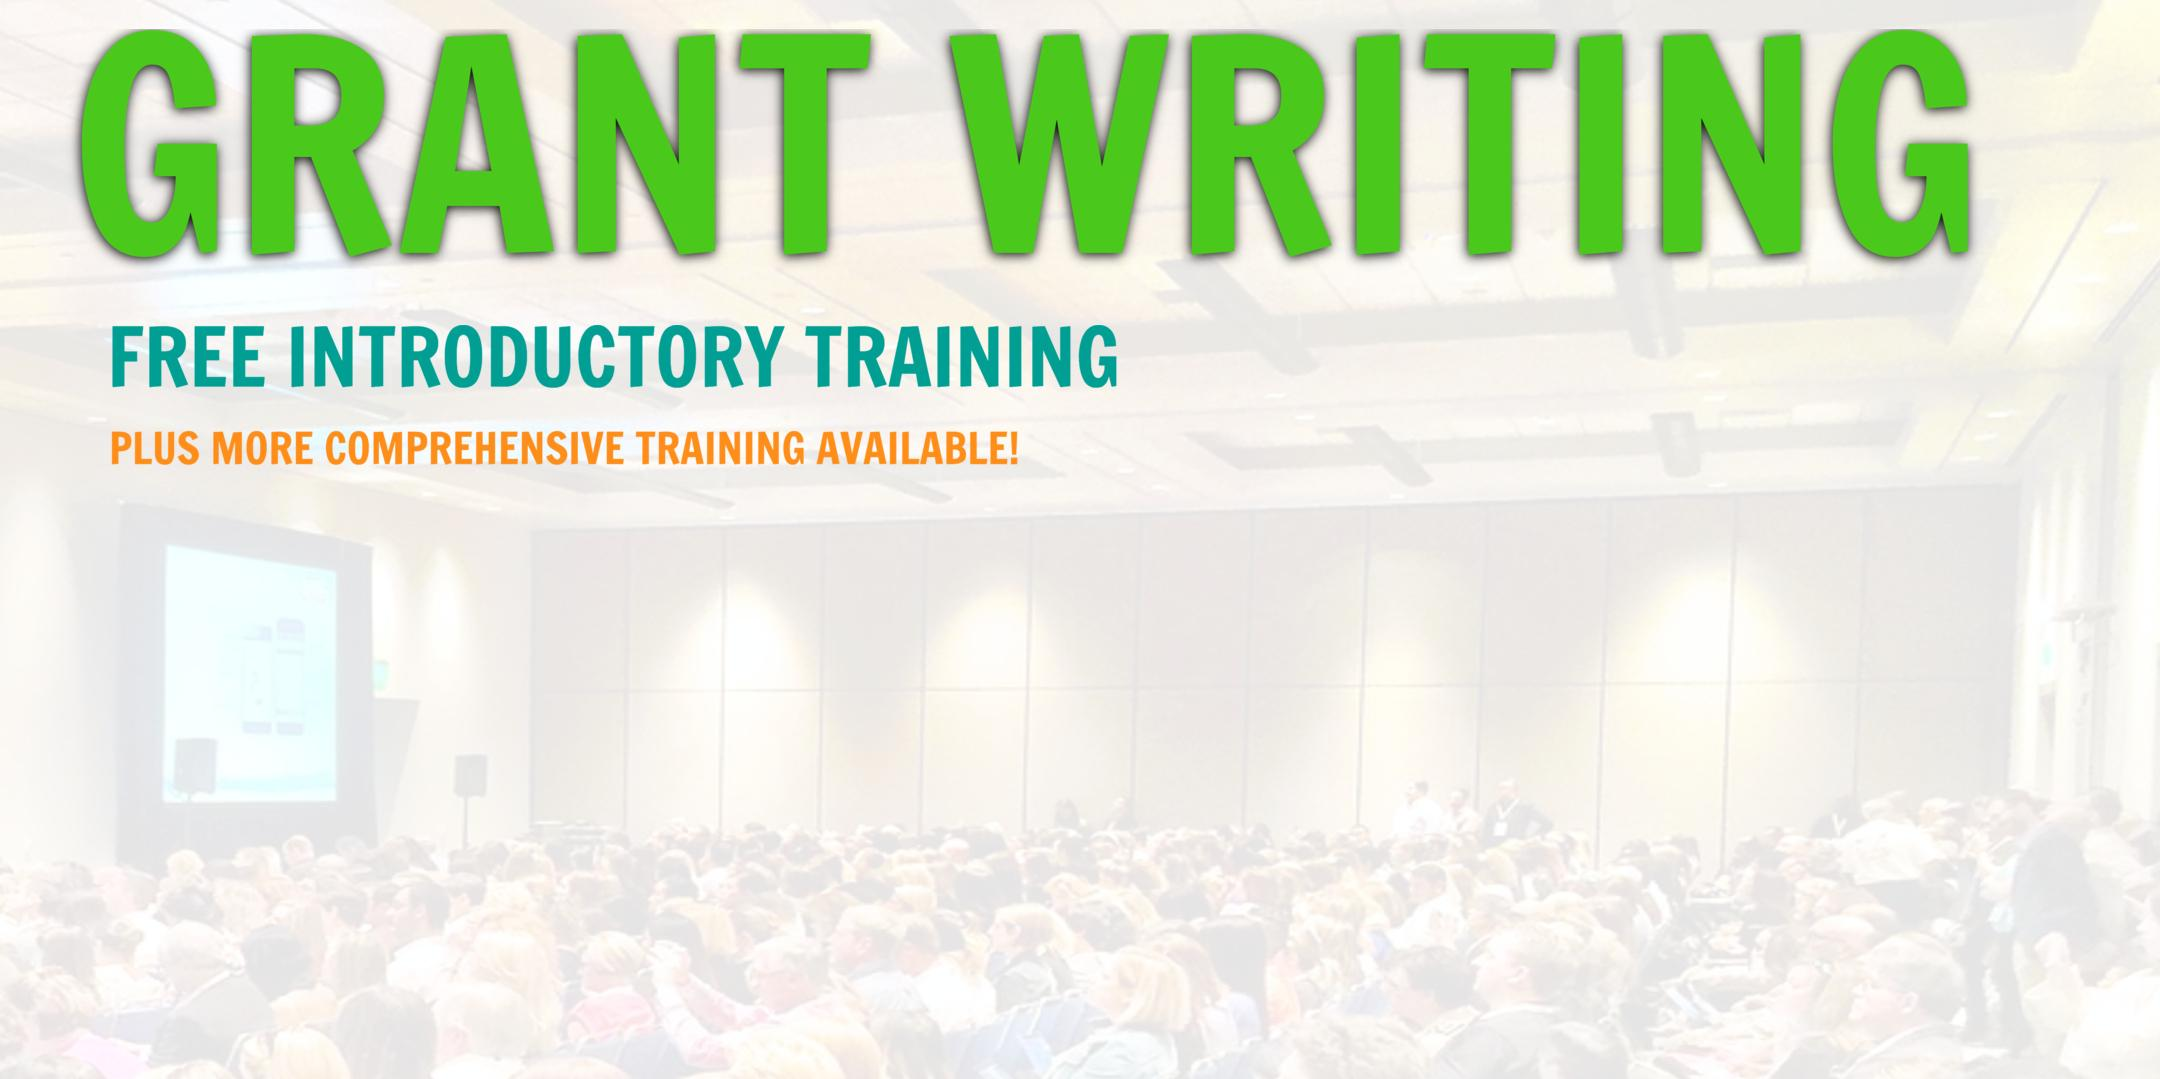 Grant Writing Introductory Training... Los Angeles, CA